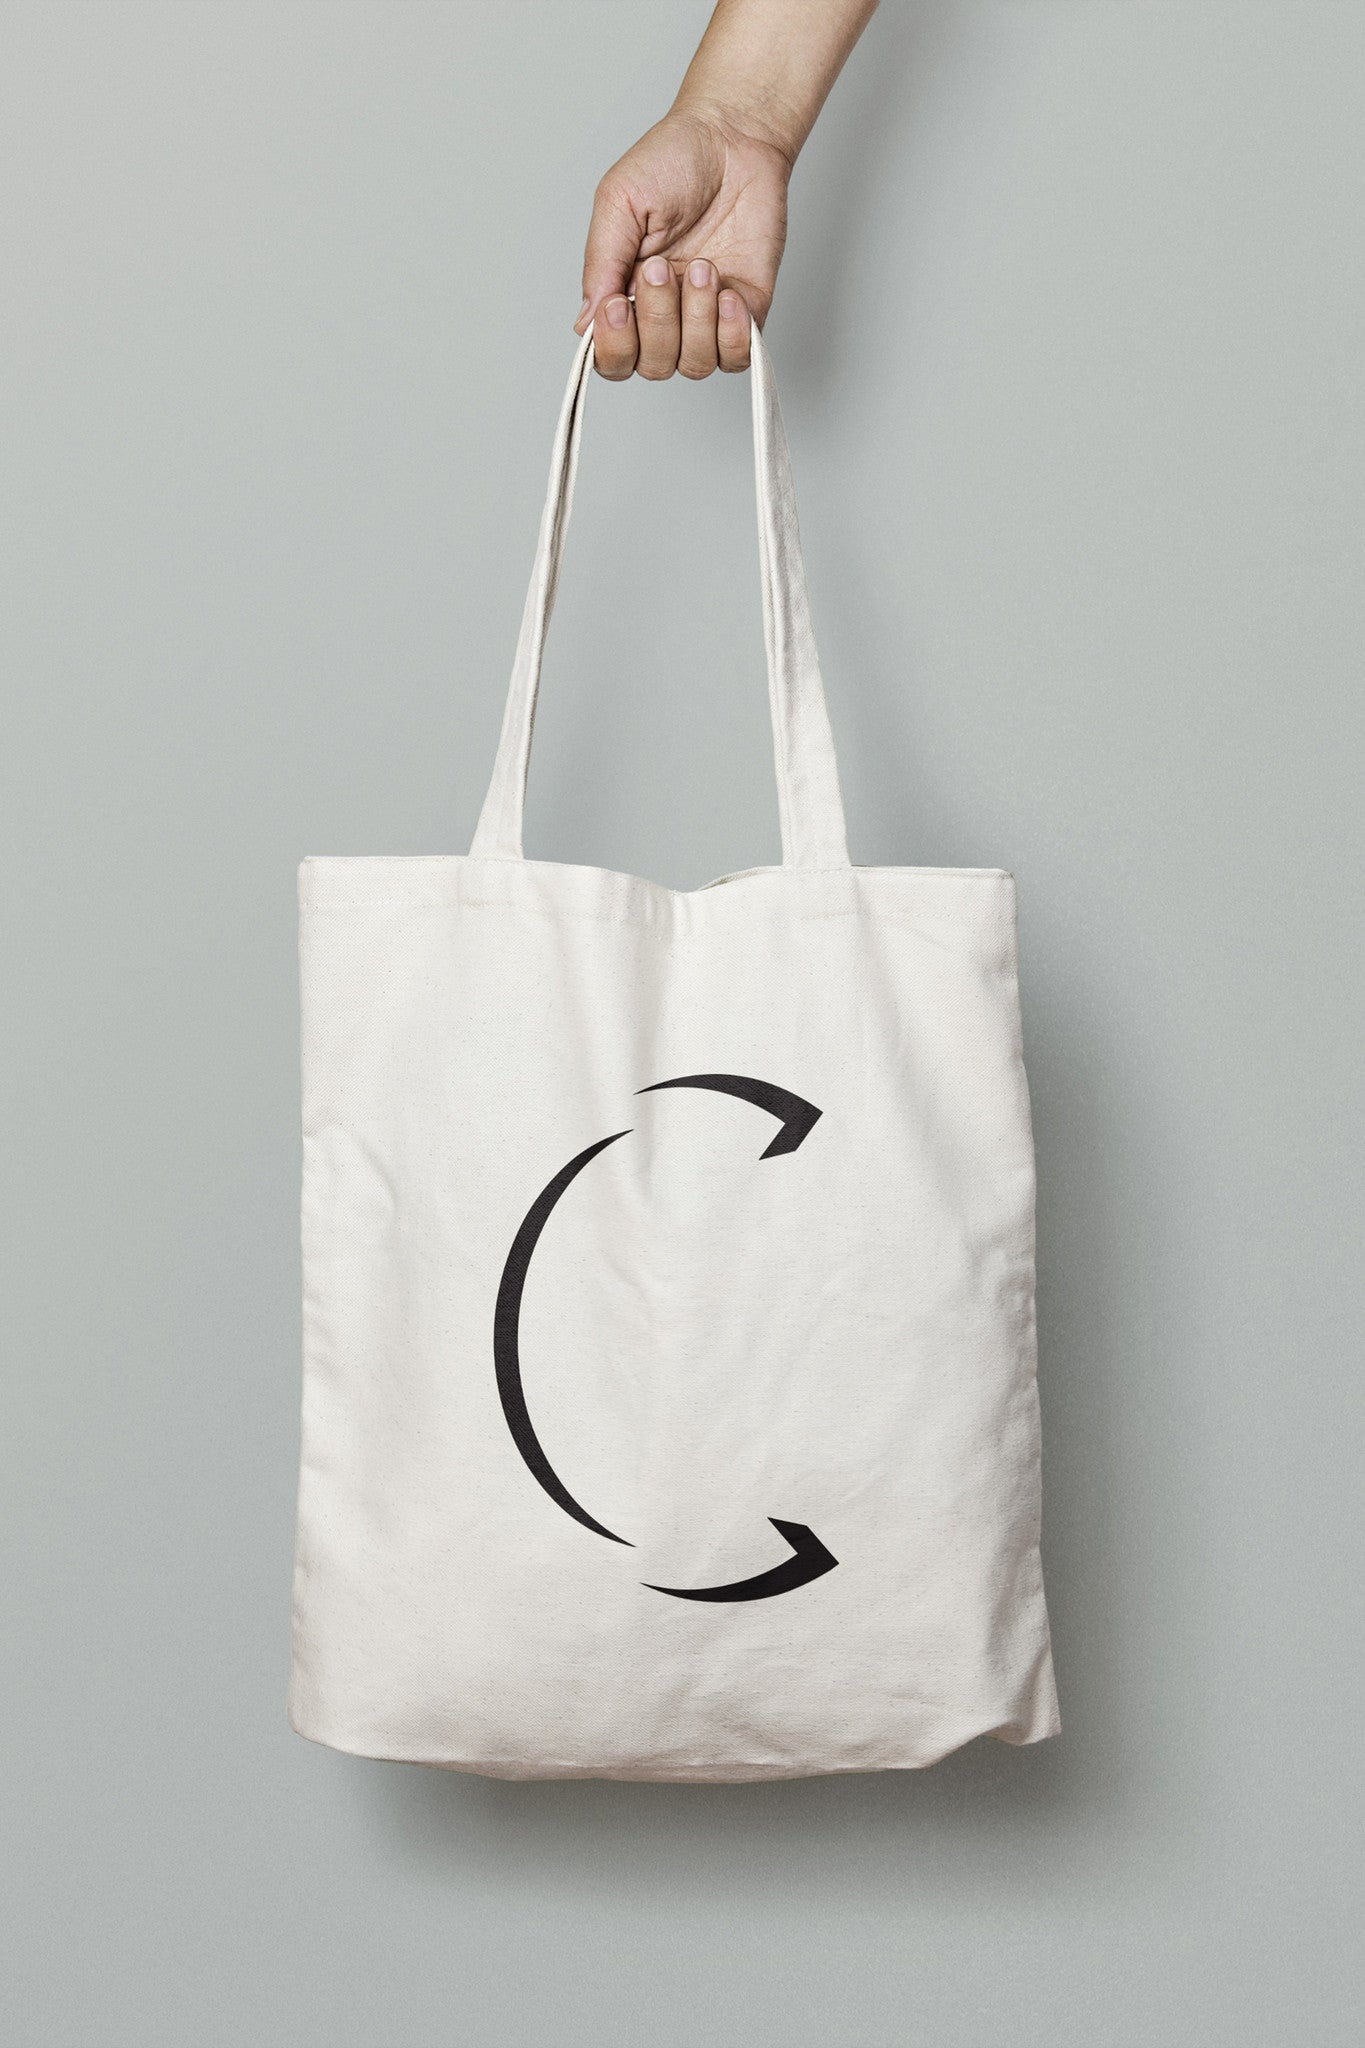 Alpha - C Tote by emerybloom